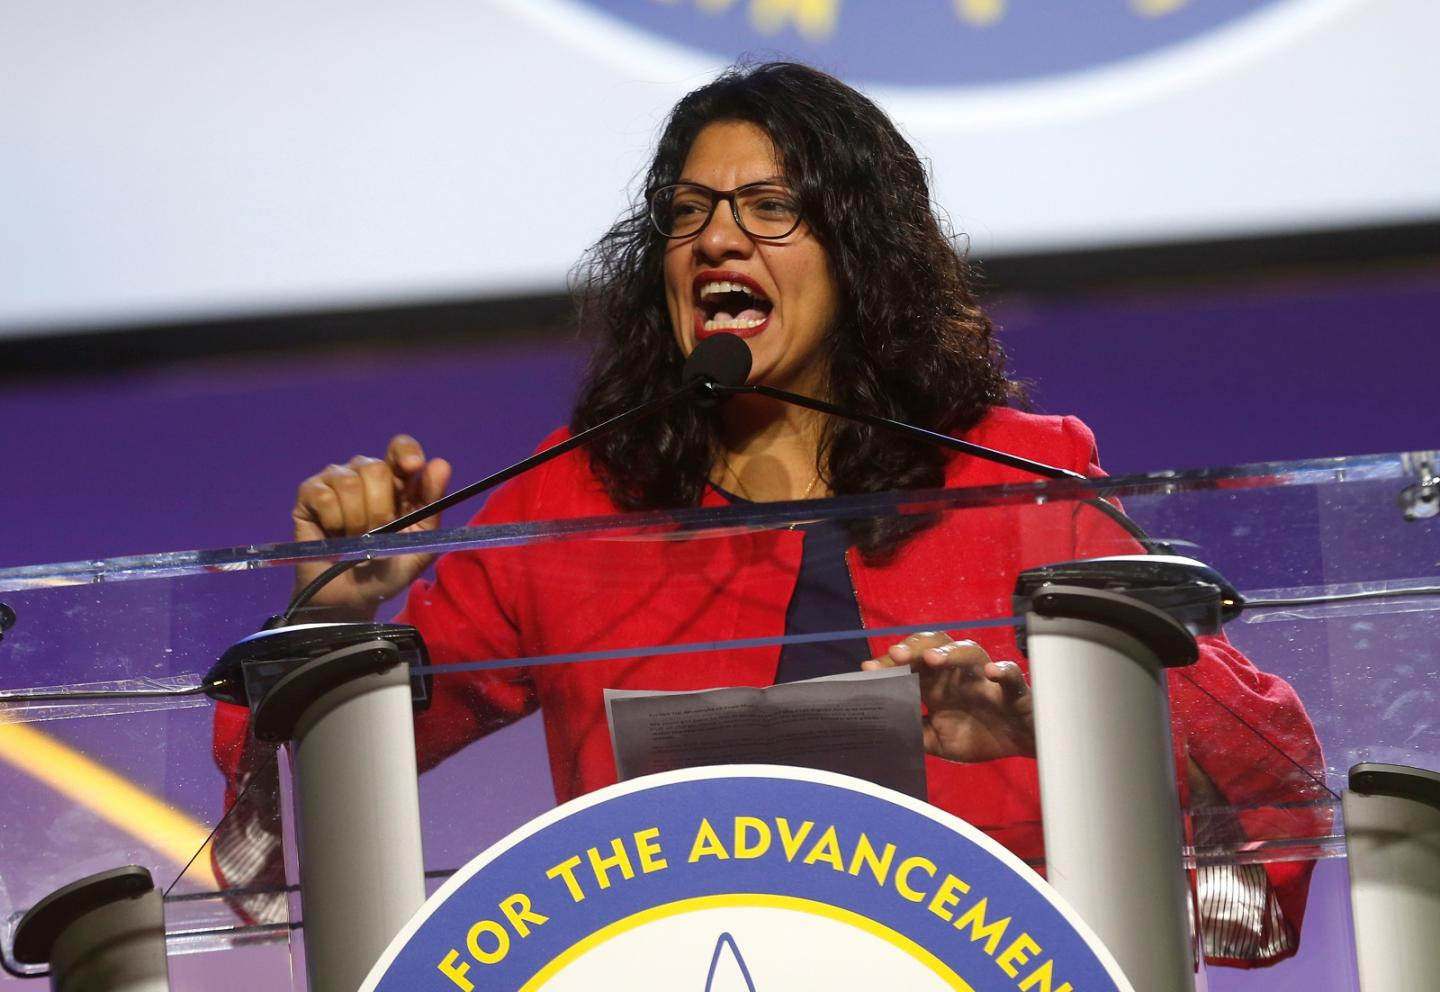 Rep. Tlaib Compares BDS Movement Against Israel To U.S. Boycotting Nazi Germany